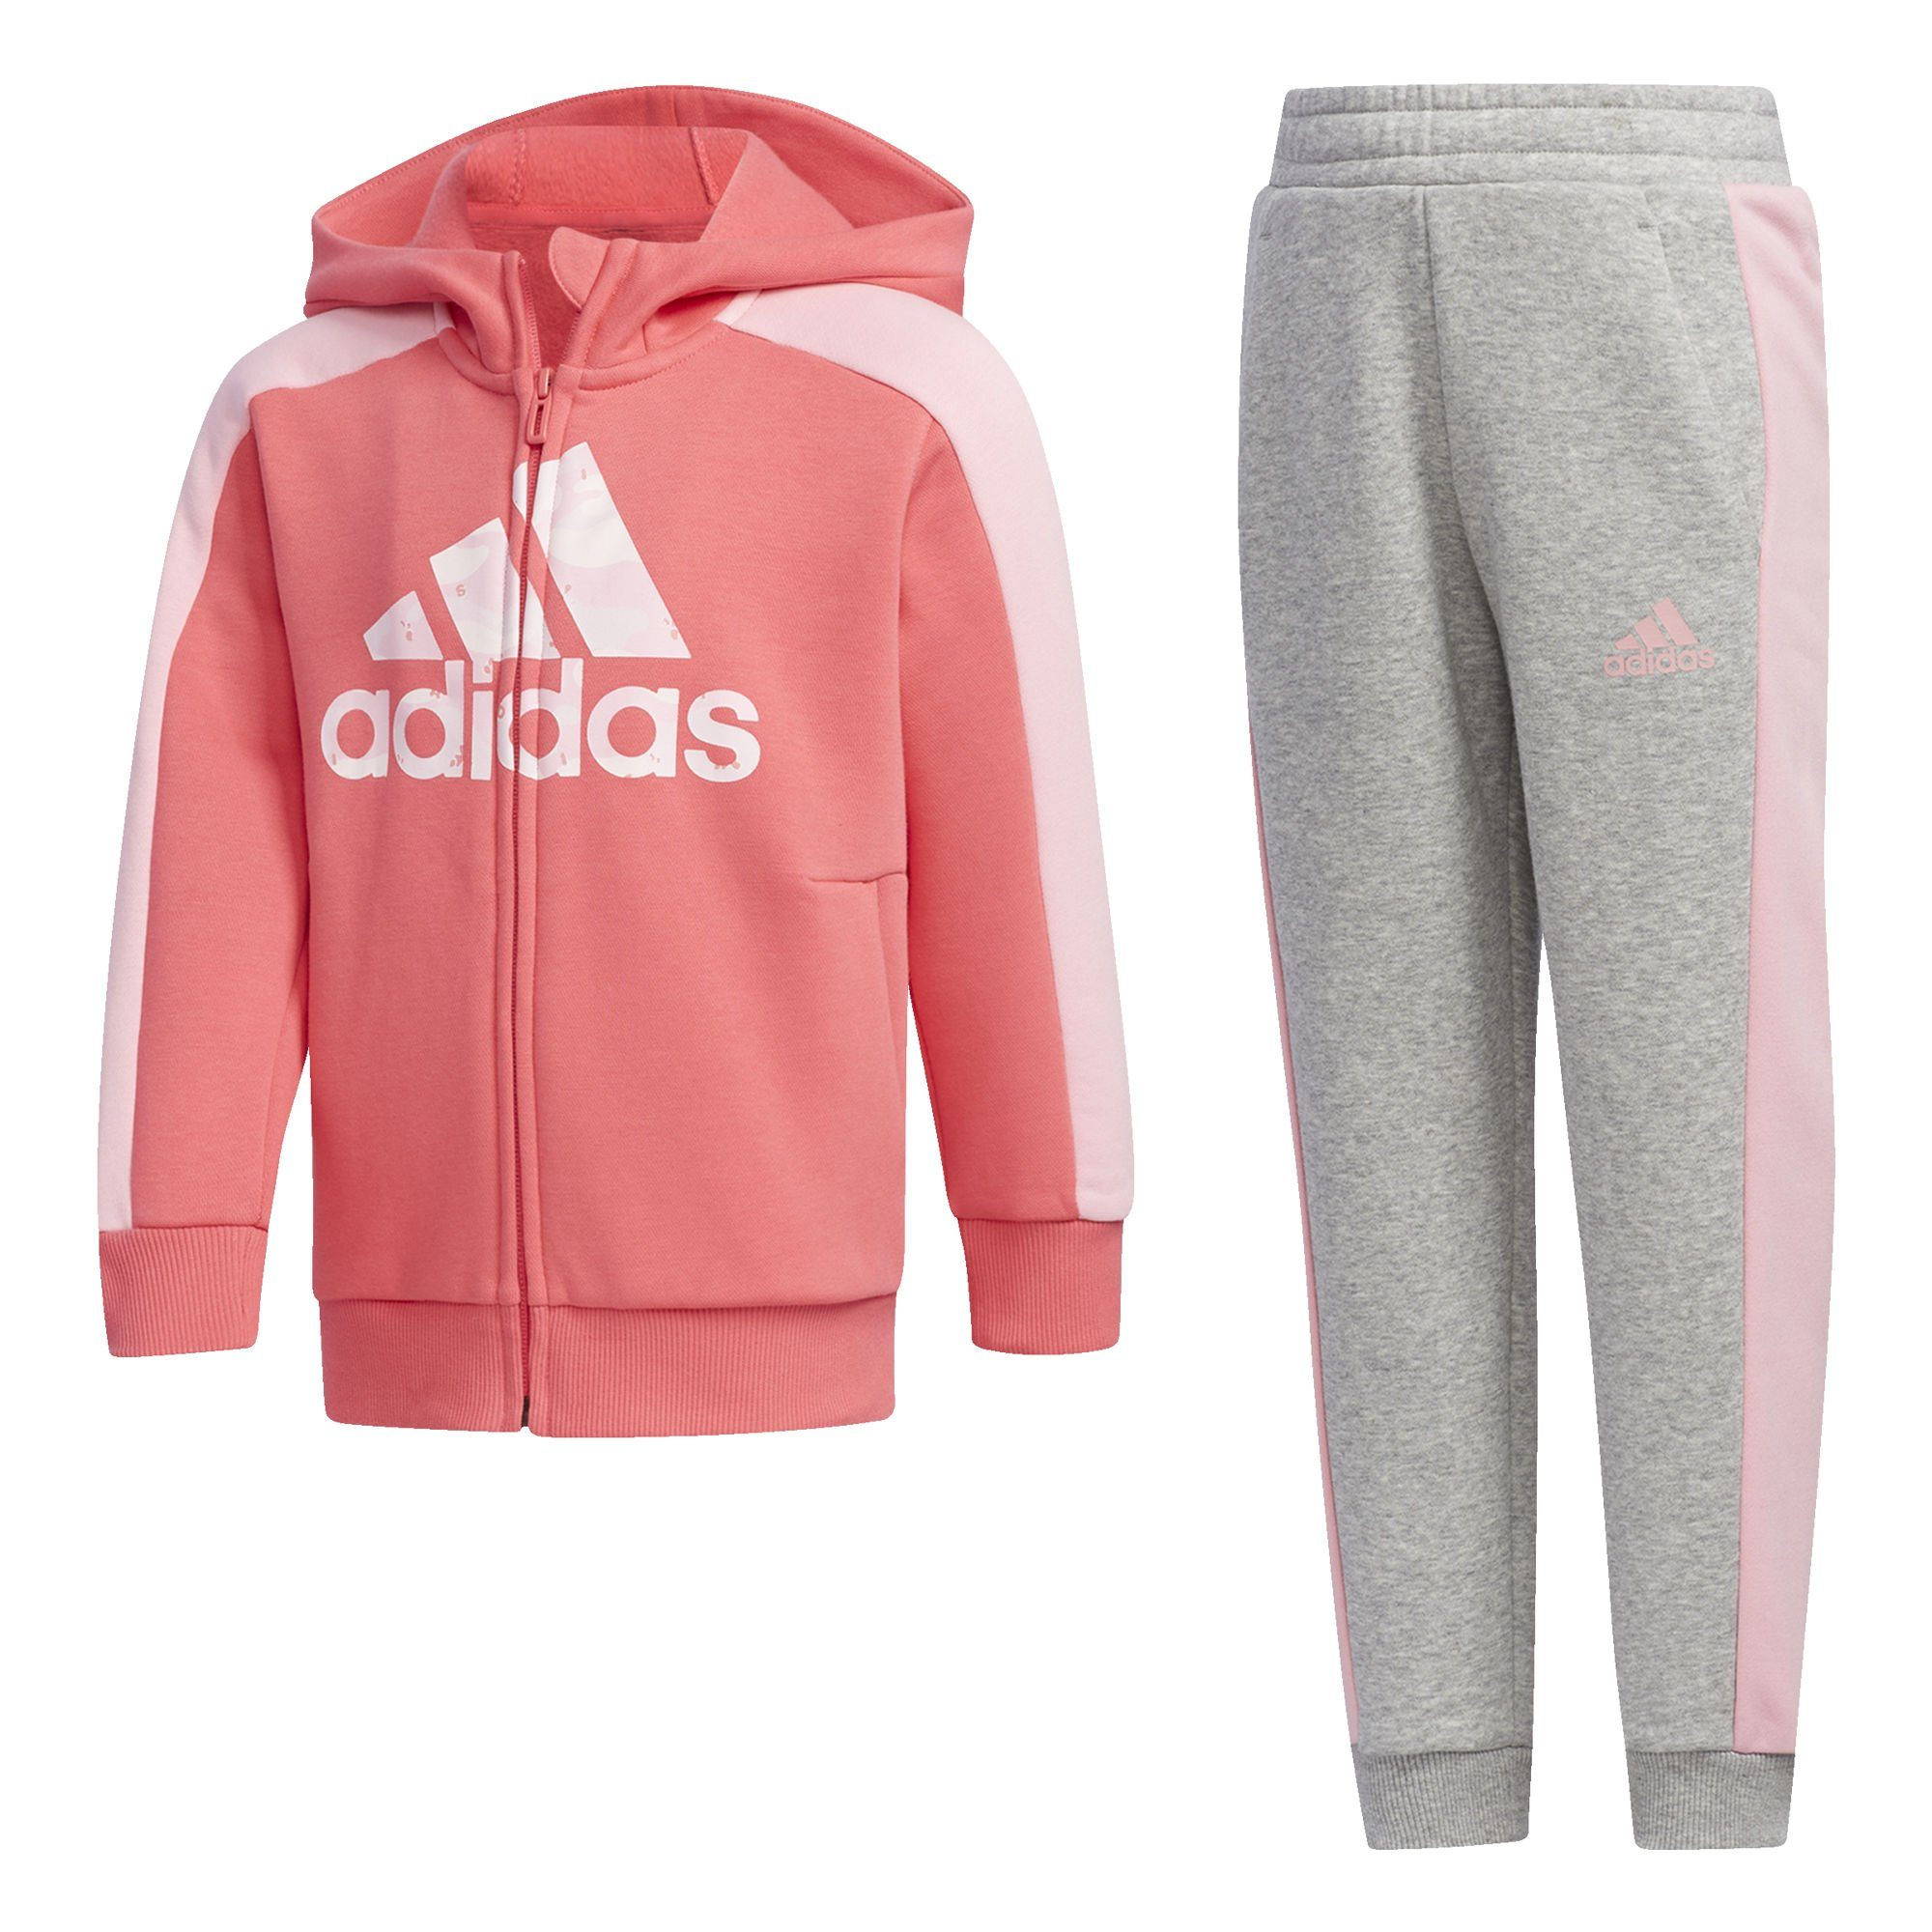 adidas Performance Trainingsanzug »Graphic Kapuzenjacken Set« online kaufen | OTTO